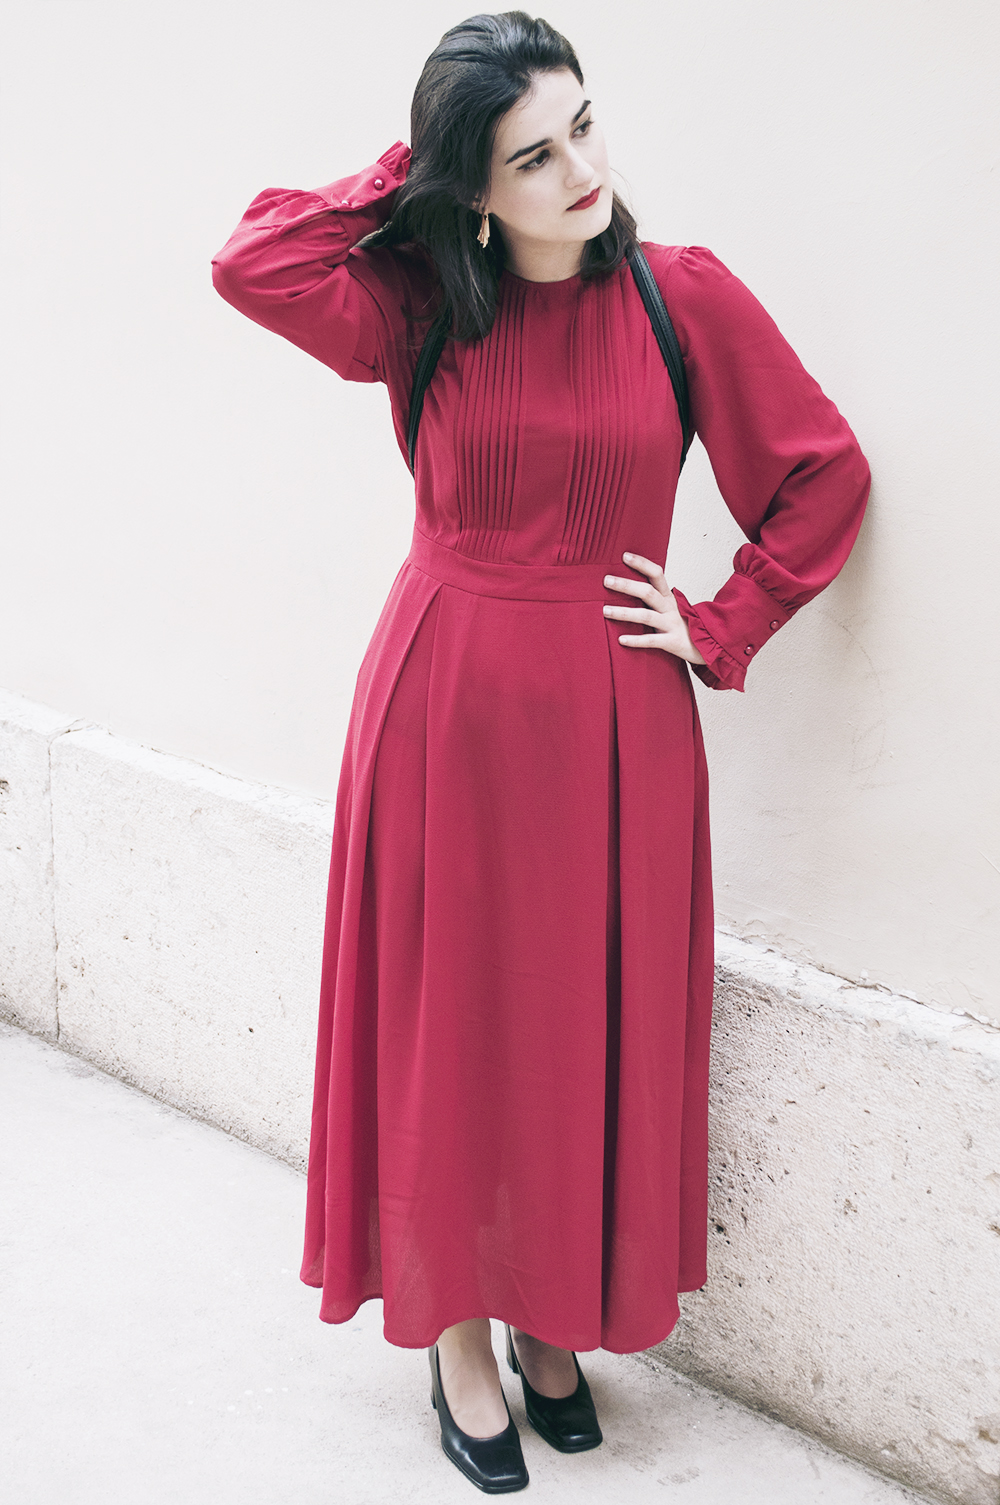 somethingfashion valenciablogger spain collaboration fashionblogger shein amanda ramón longdresses outfit idea ootd_0089